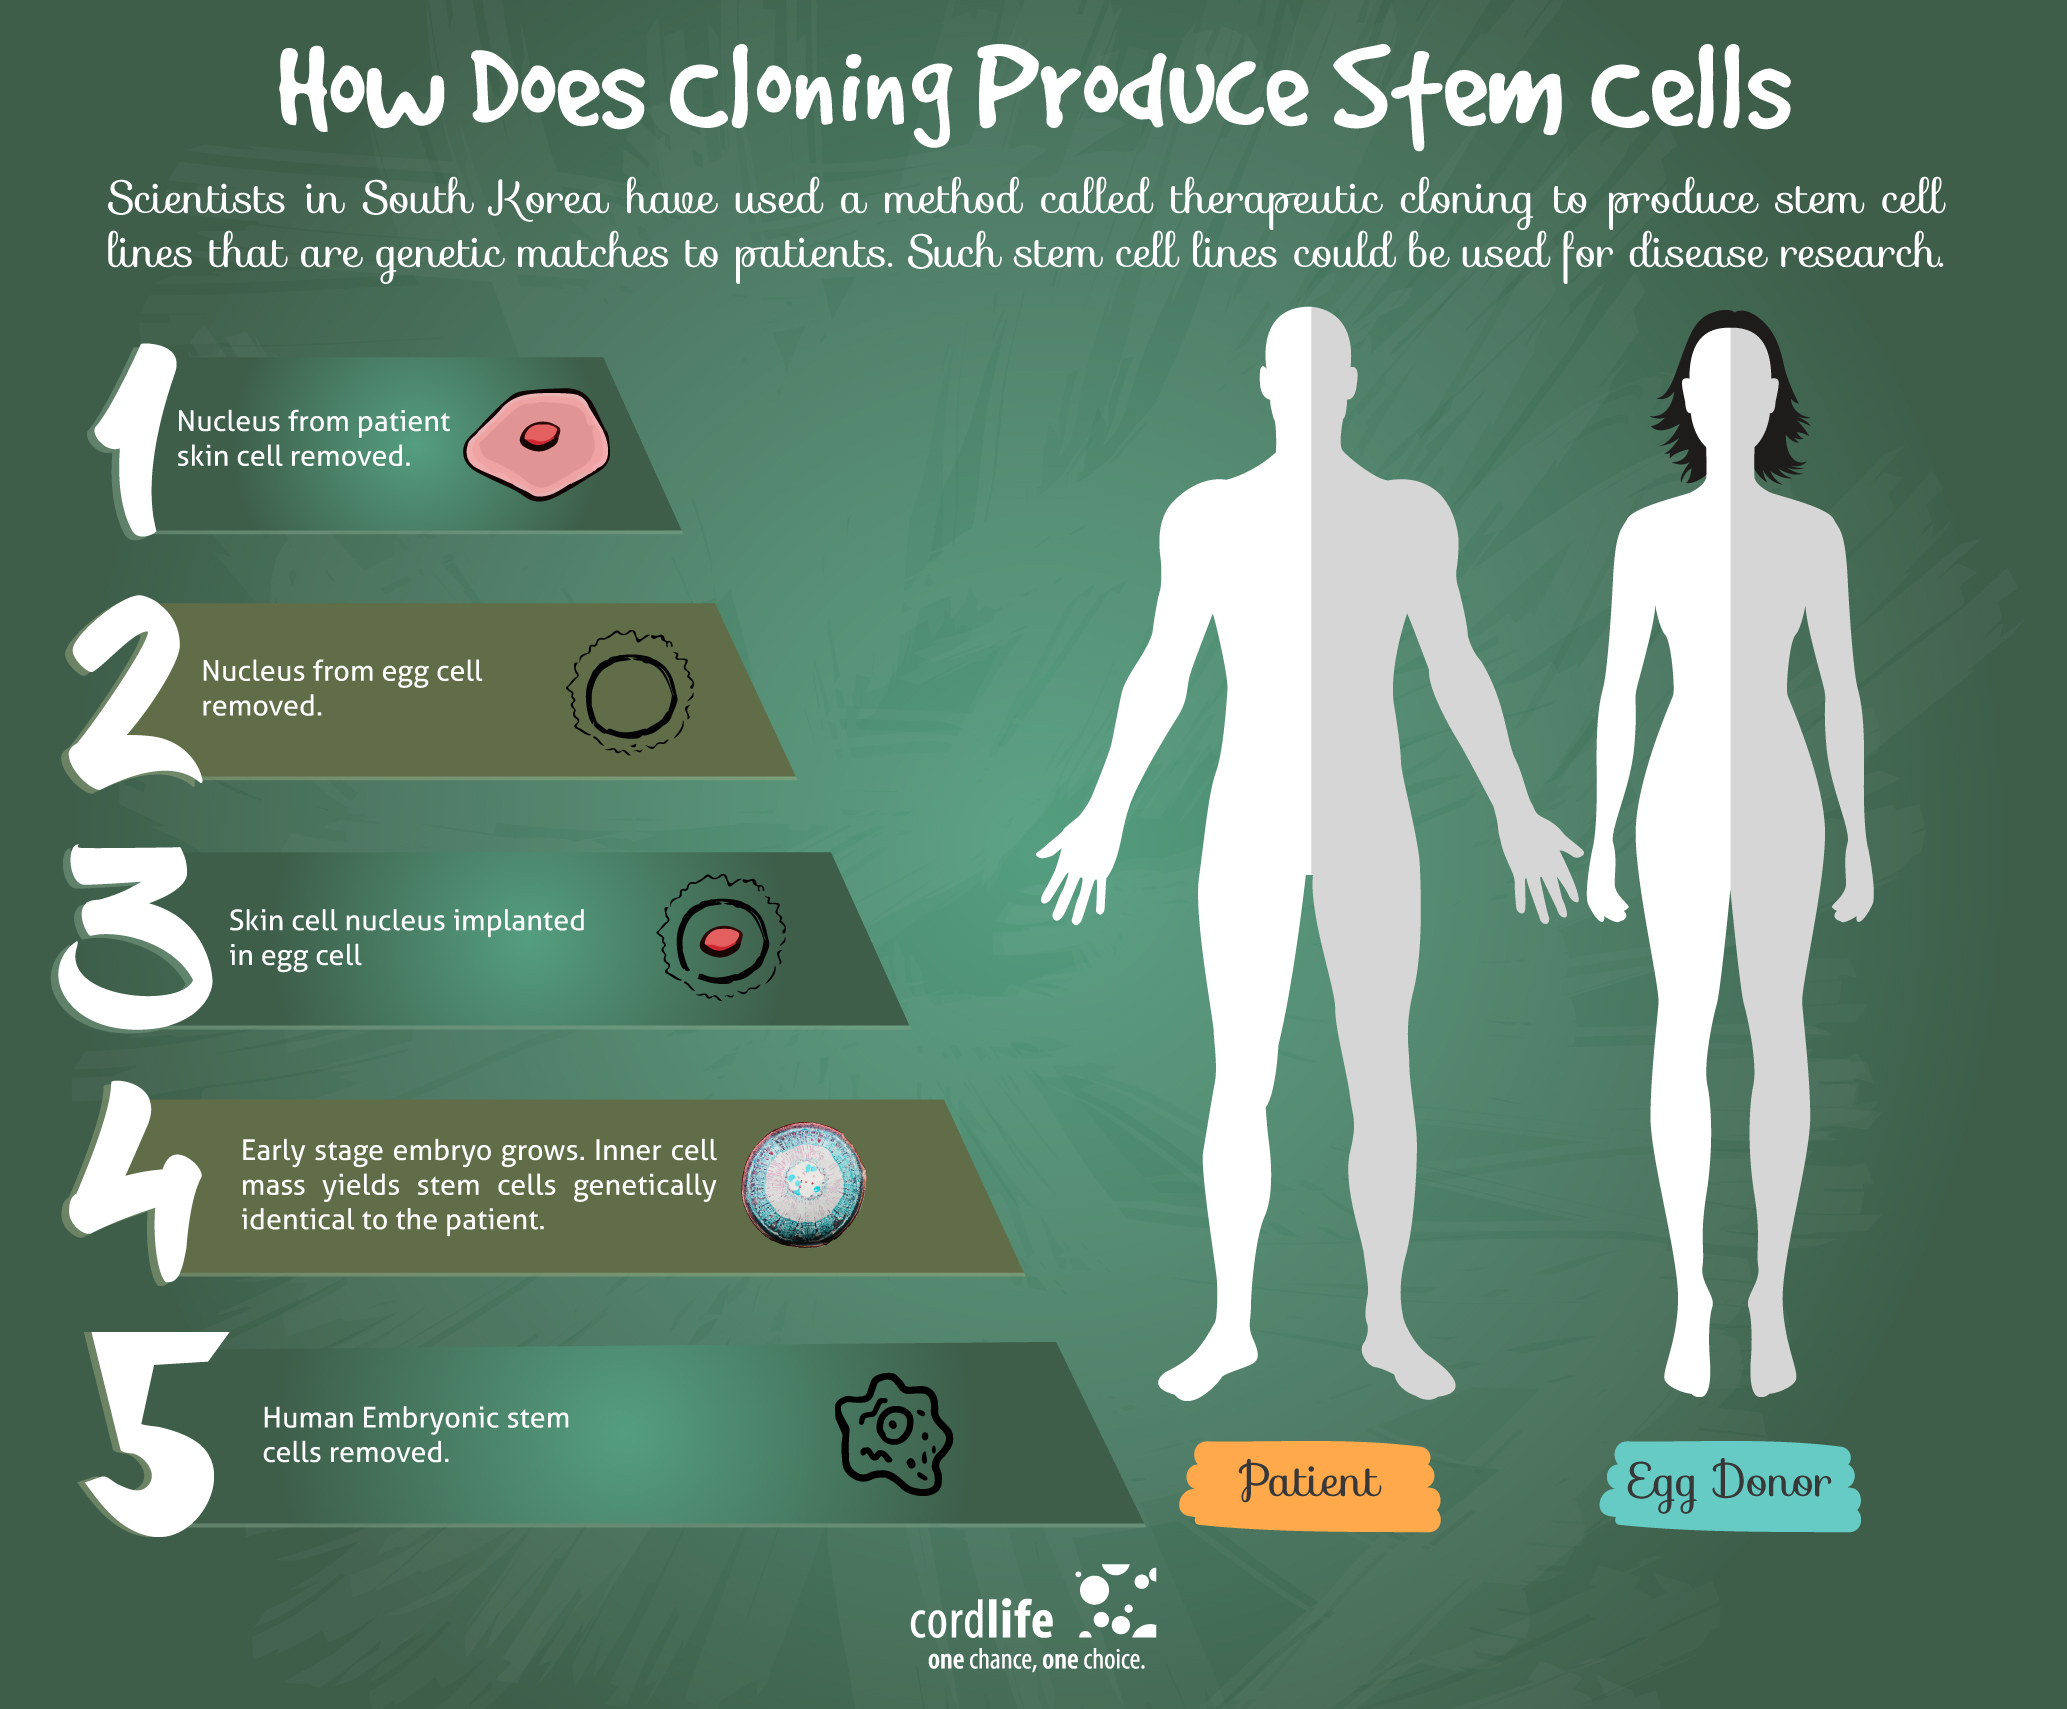 How Does Cloning Produce Stem Cells